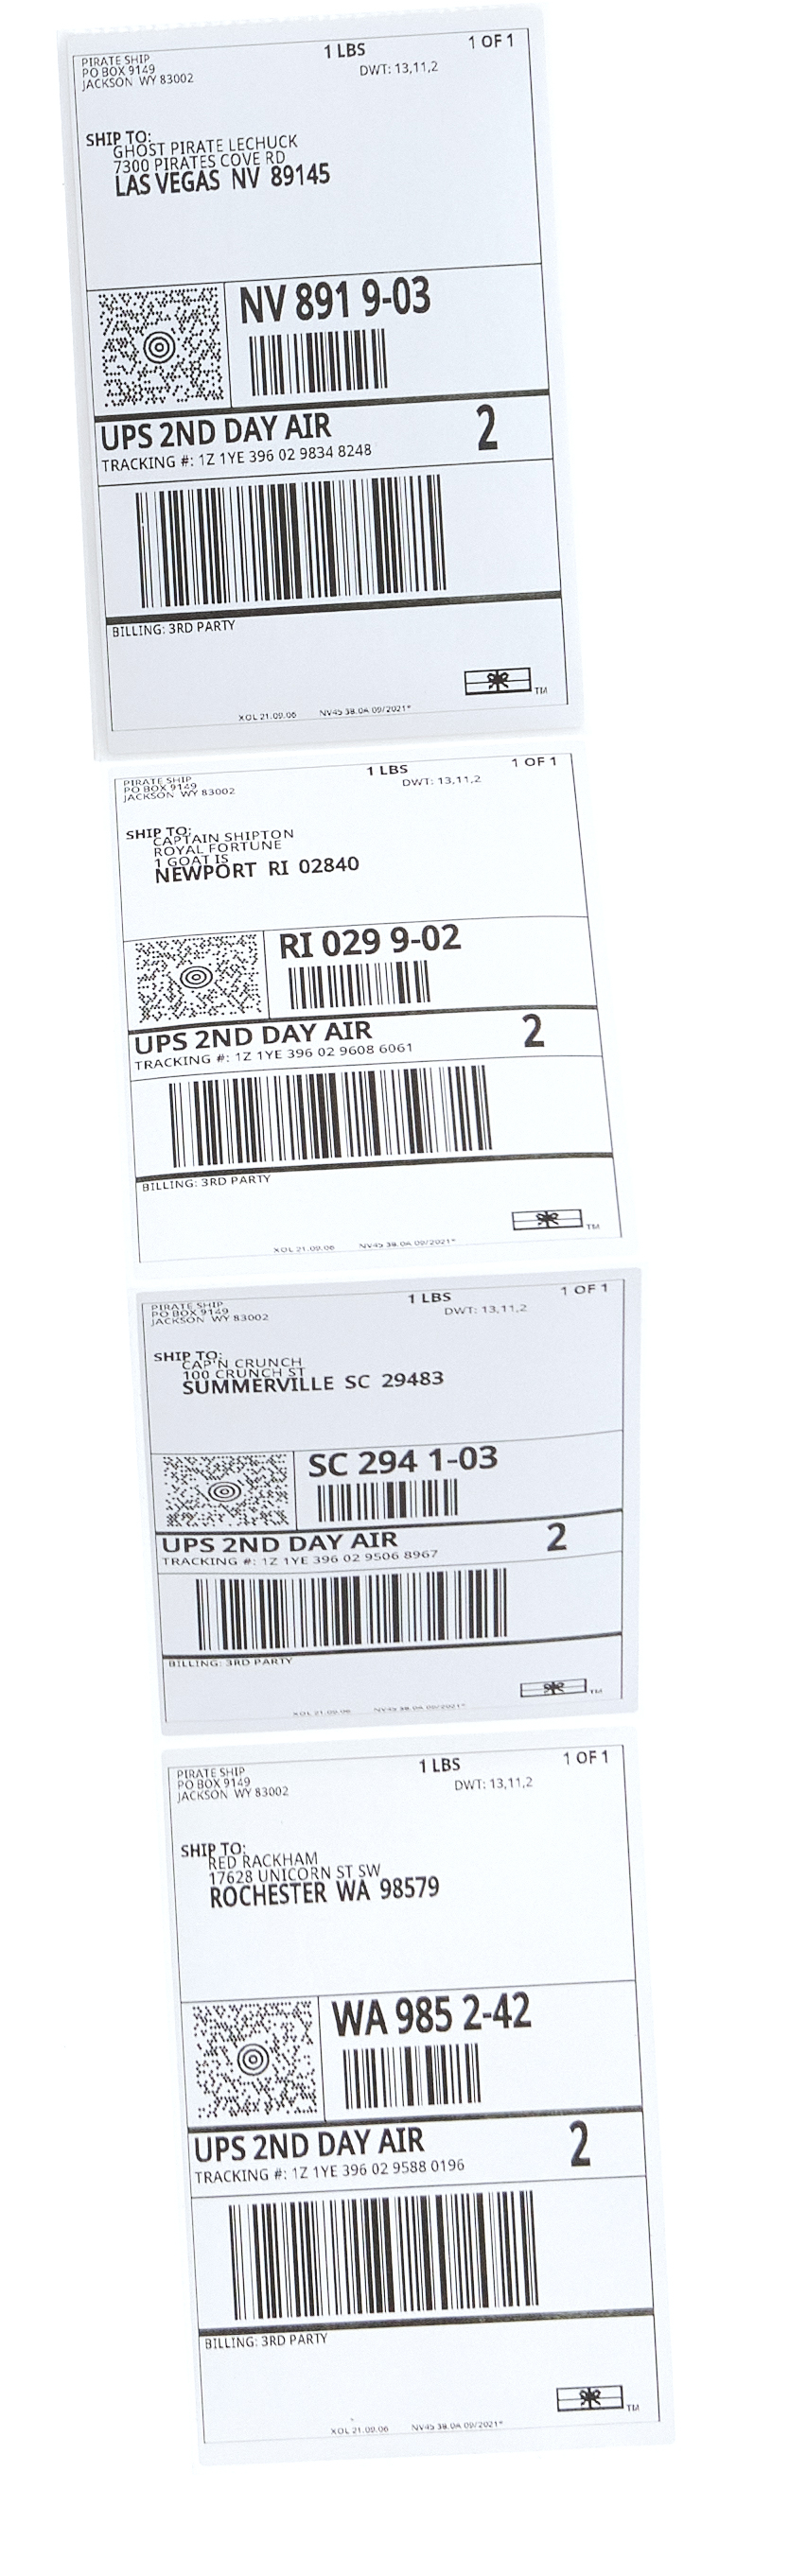 Discounted UPS 2nd Day Air shipping labels